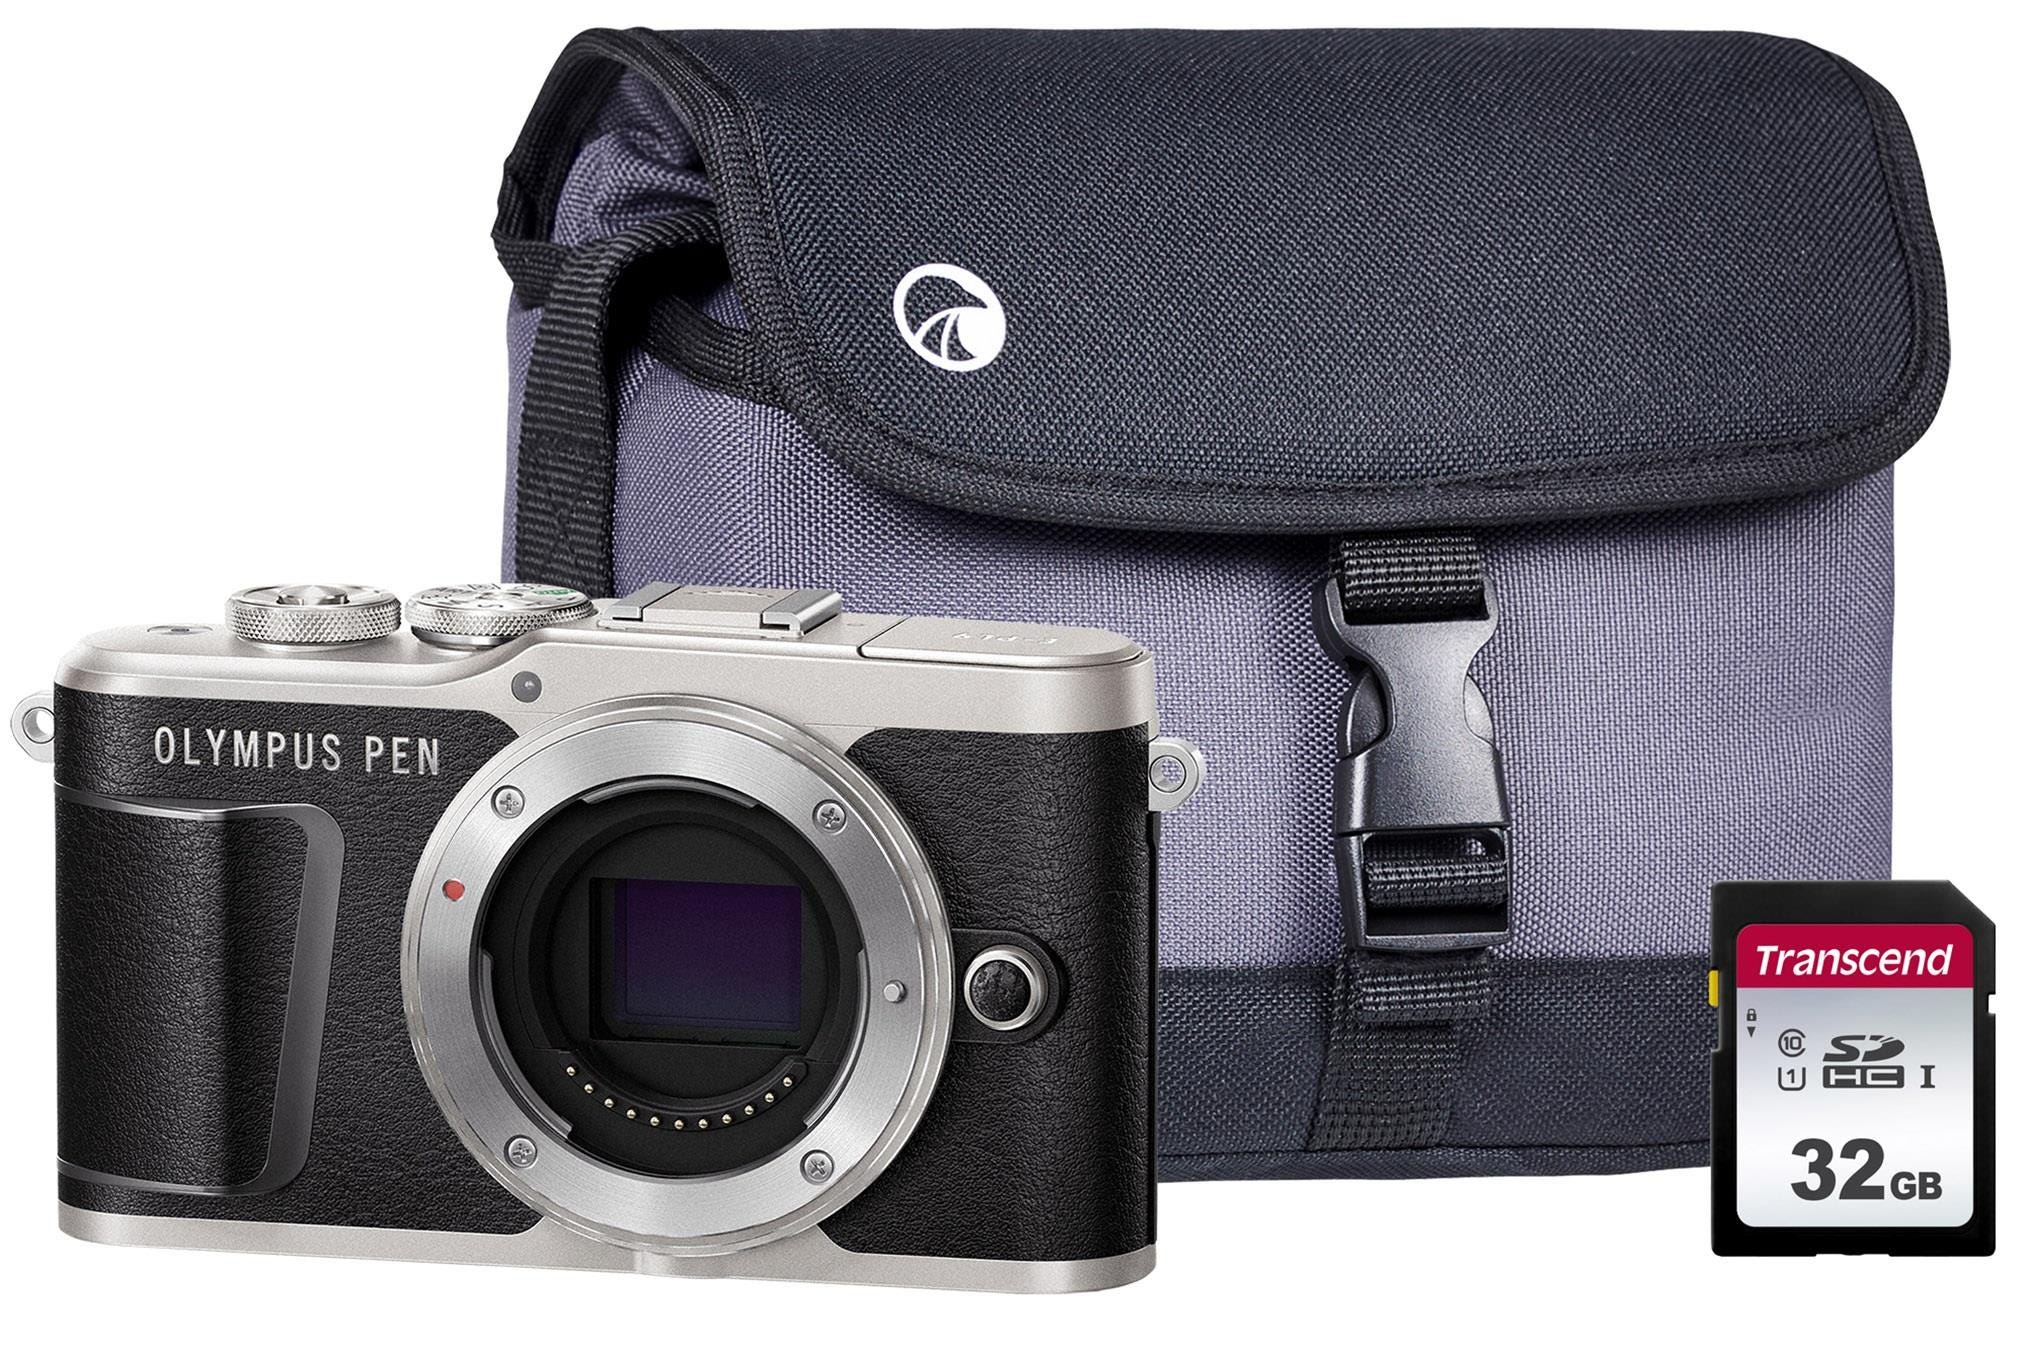 Olympus PEN E-PL9 Compact System Camera Body including Case & 32GB SD Card - Black